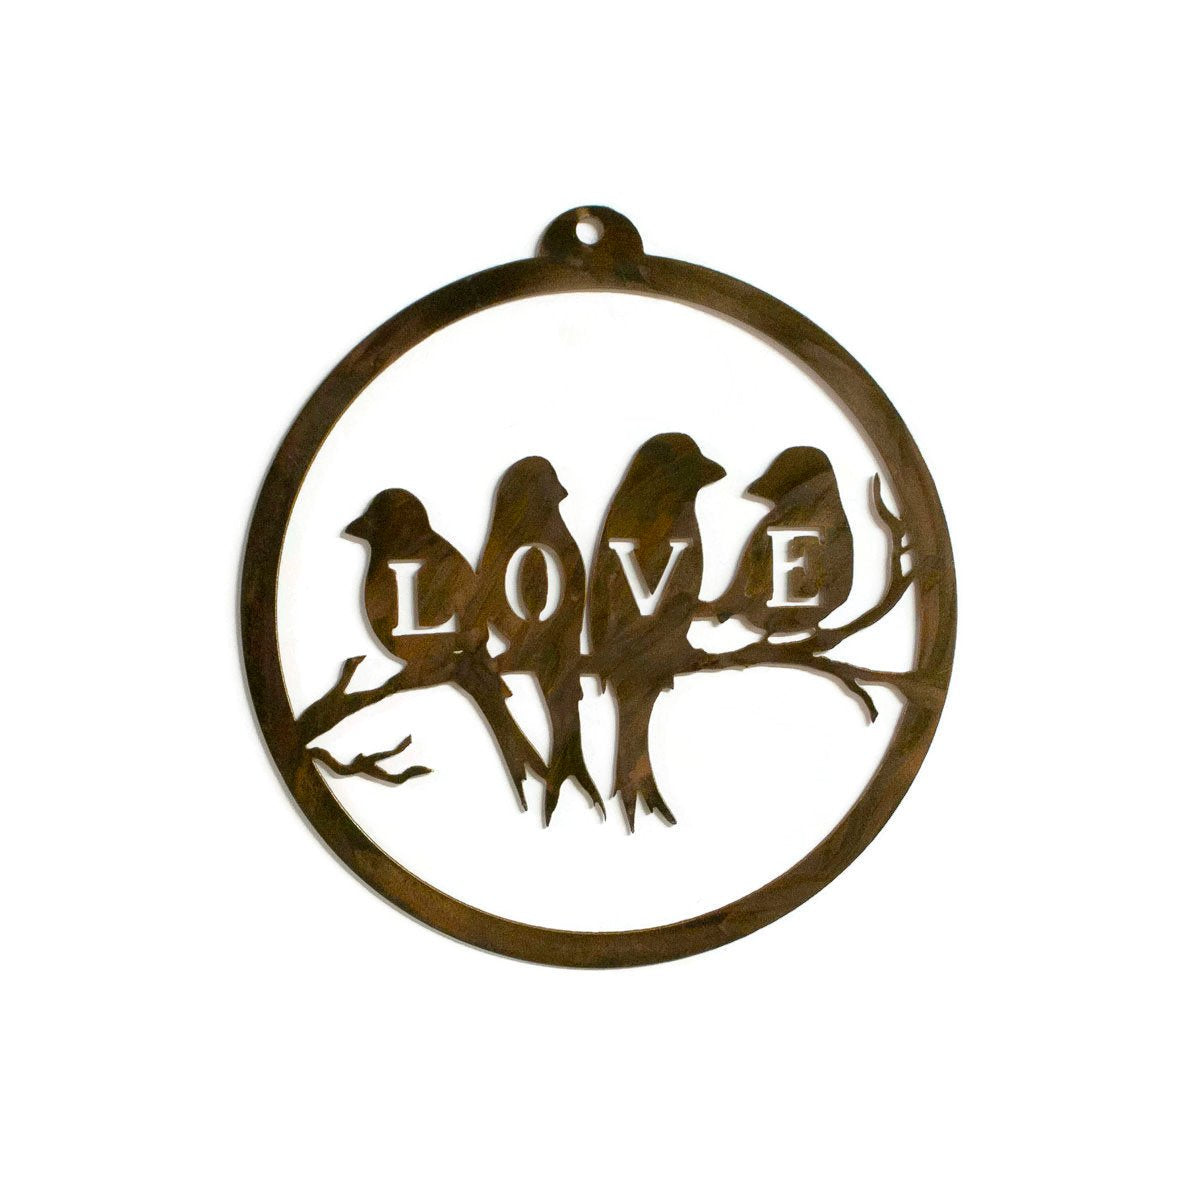 Love Birds Rustic Metal Wall Art, Bird Home Decor, Gift for Gardeners, Anniversary